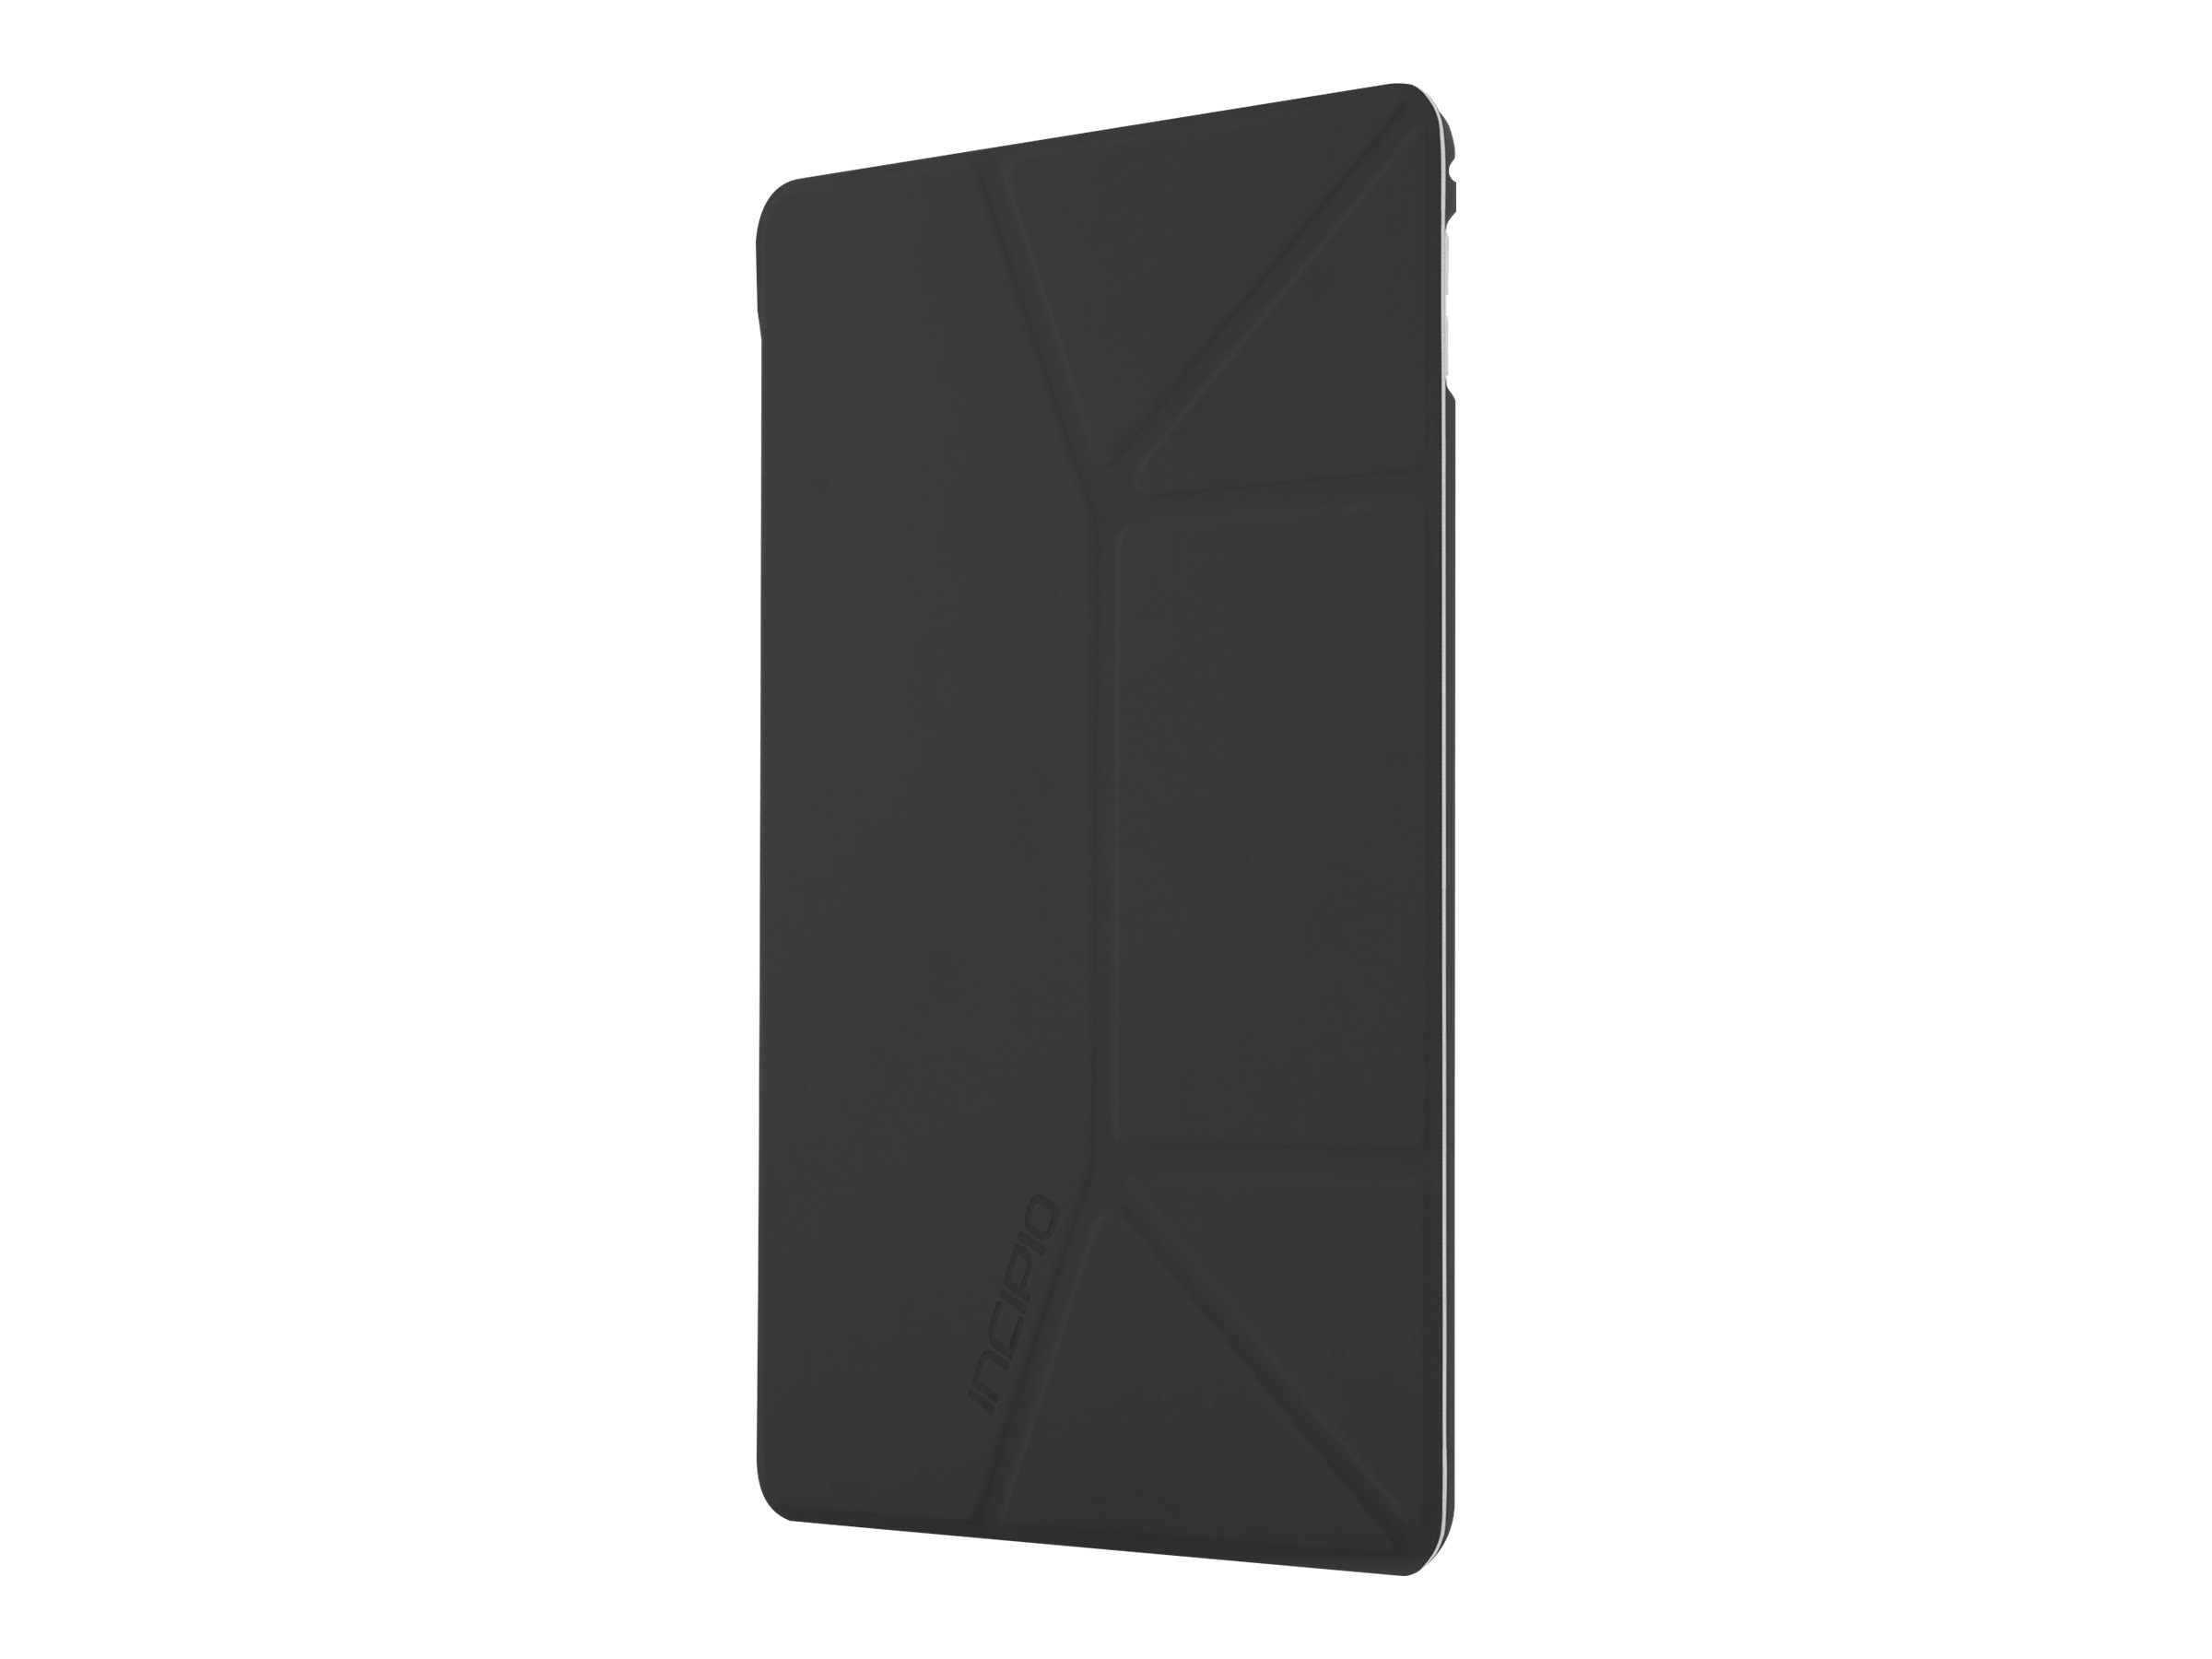 Incipio LGND Premium Hard Shell Folio for iPad Air 2, Black